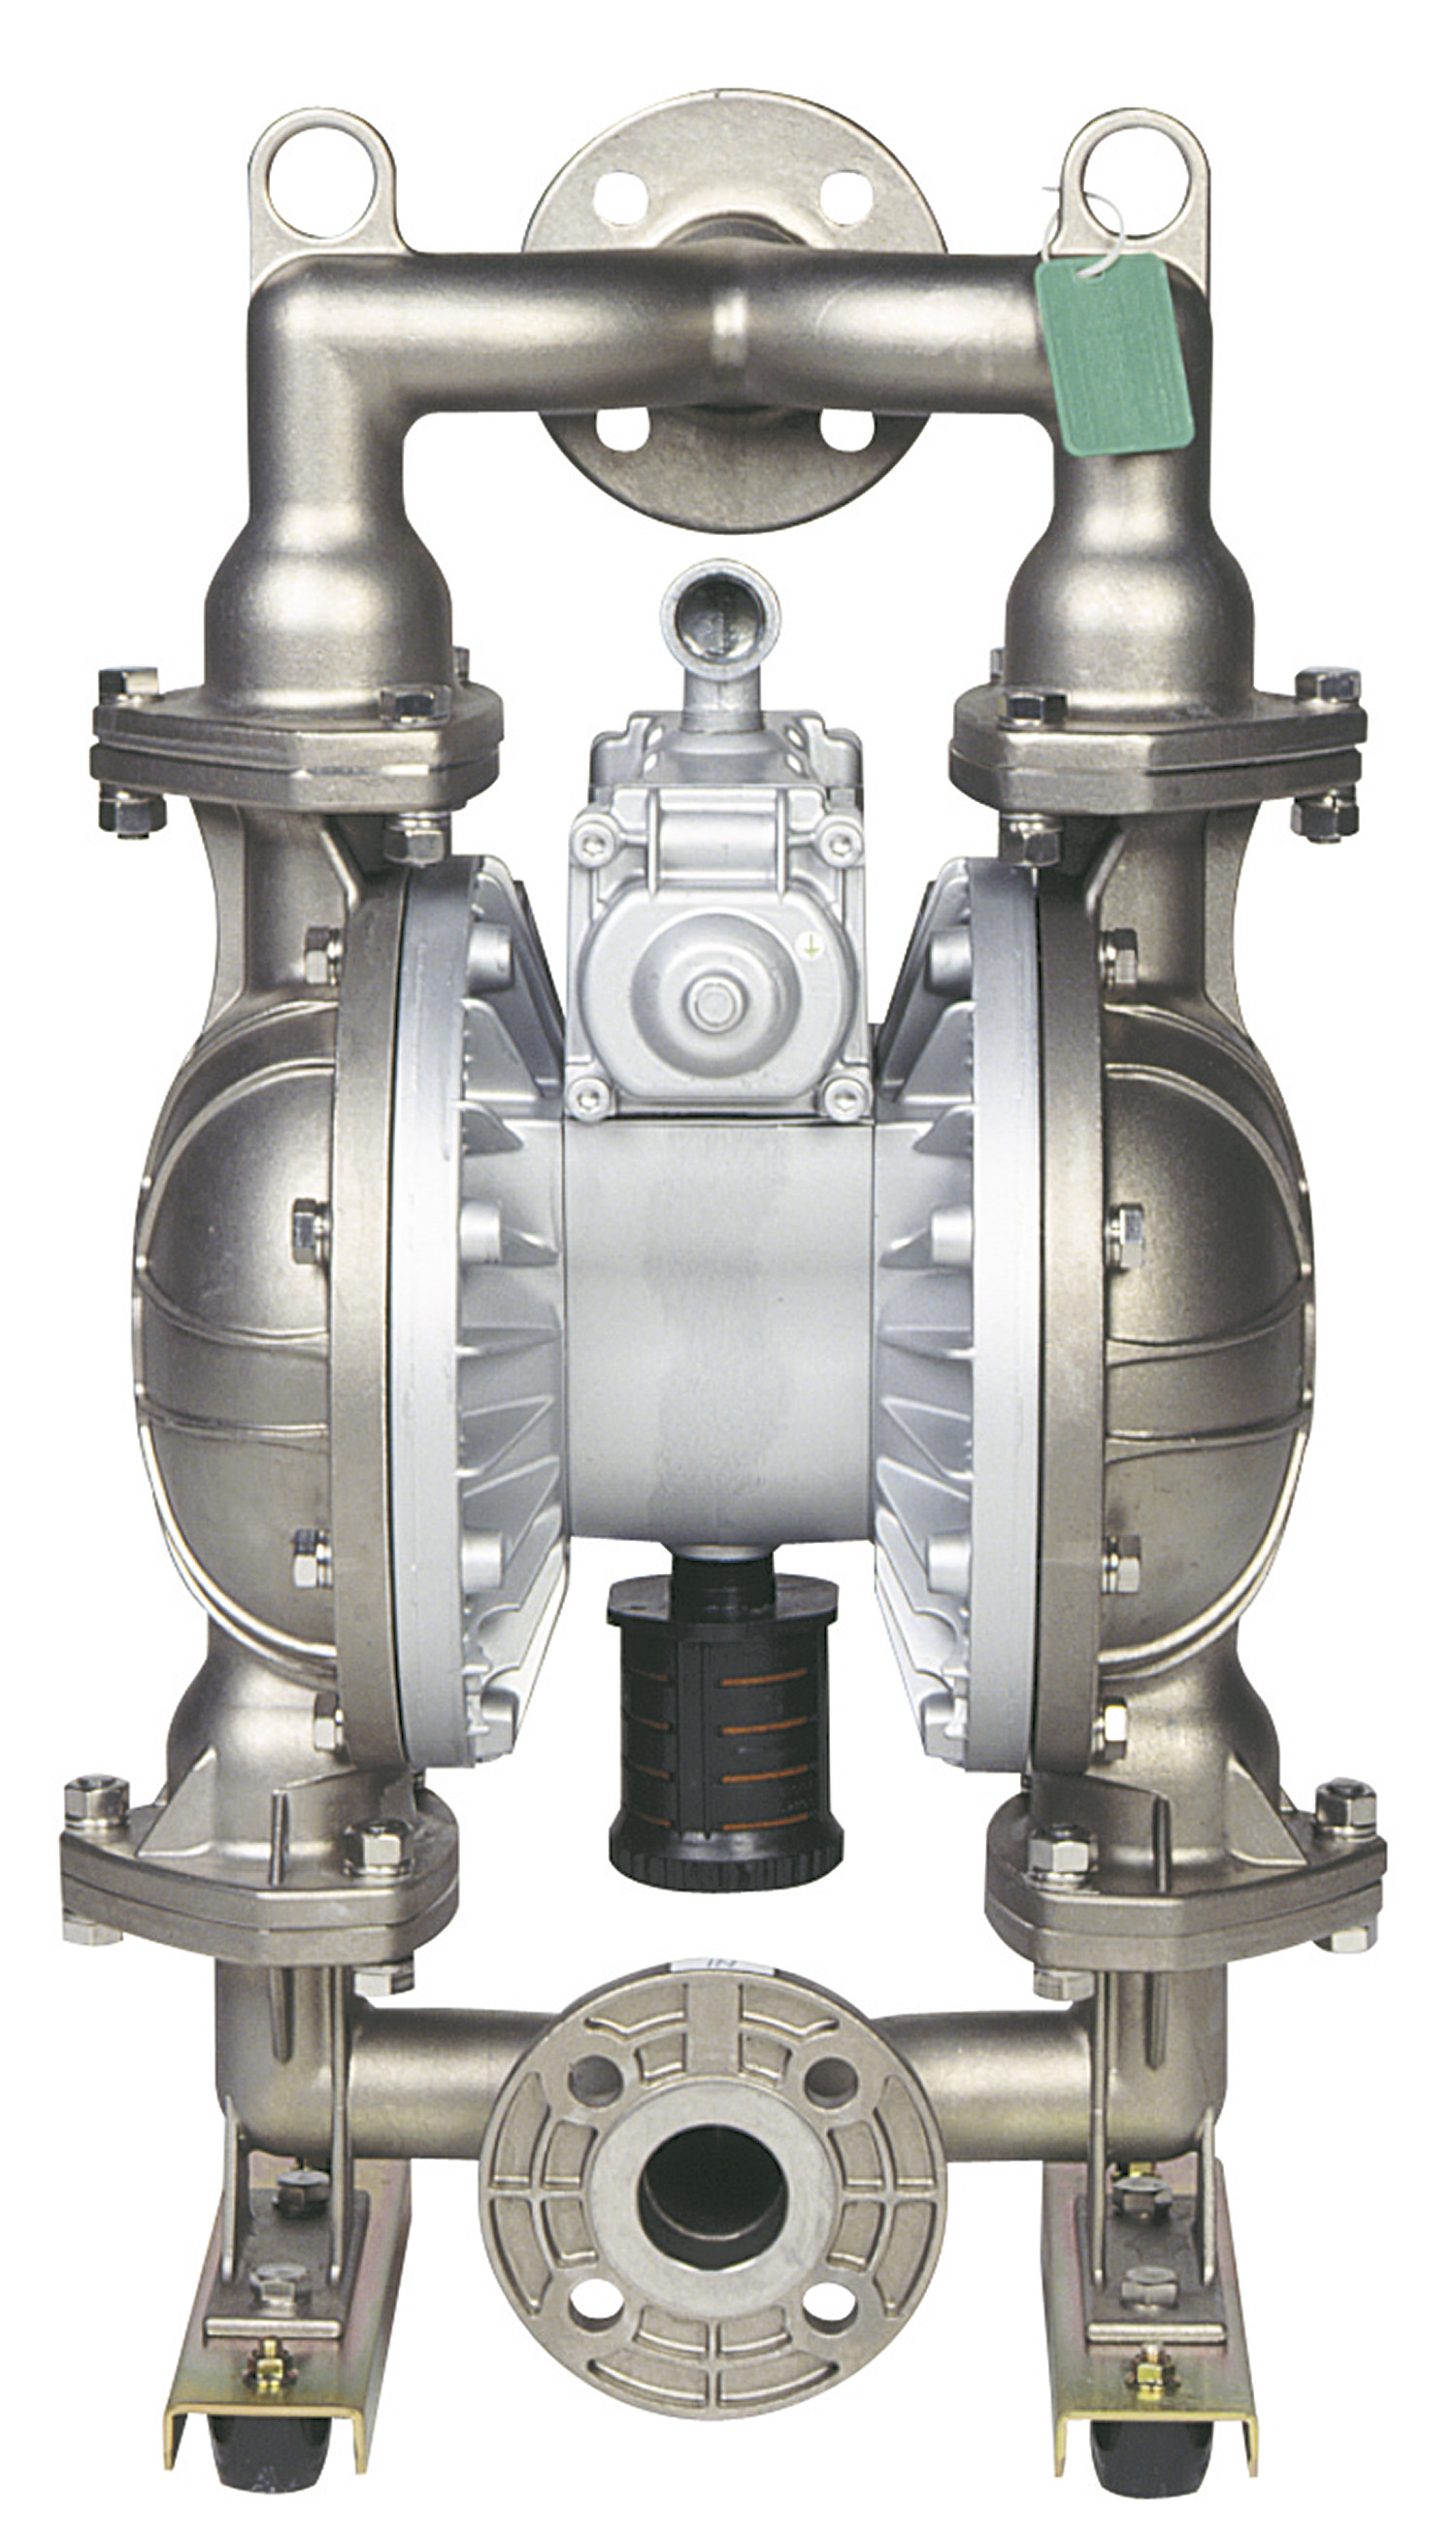 Yamada ndp 40 series 1 12 inch aodd pumps reliable equip related products more pumps parts ccuart Choice Image